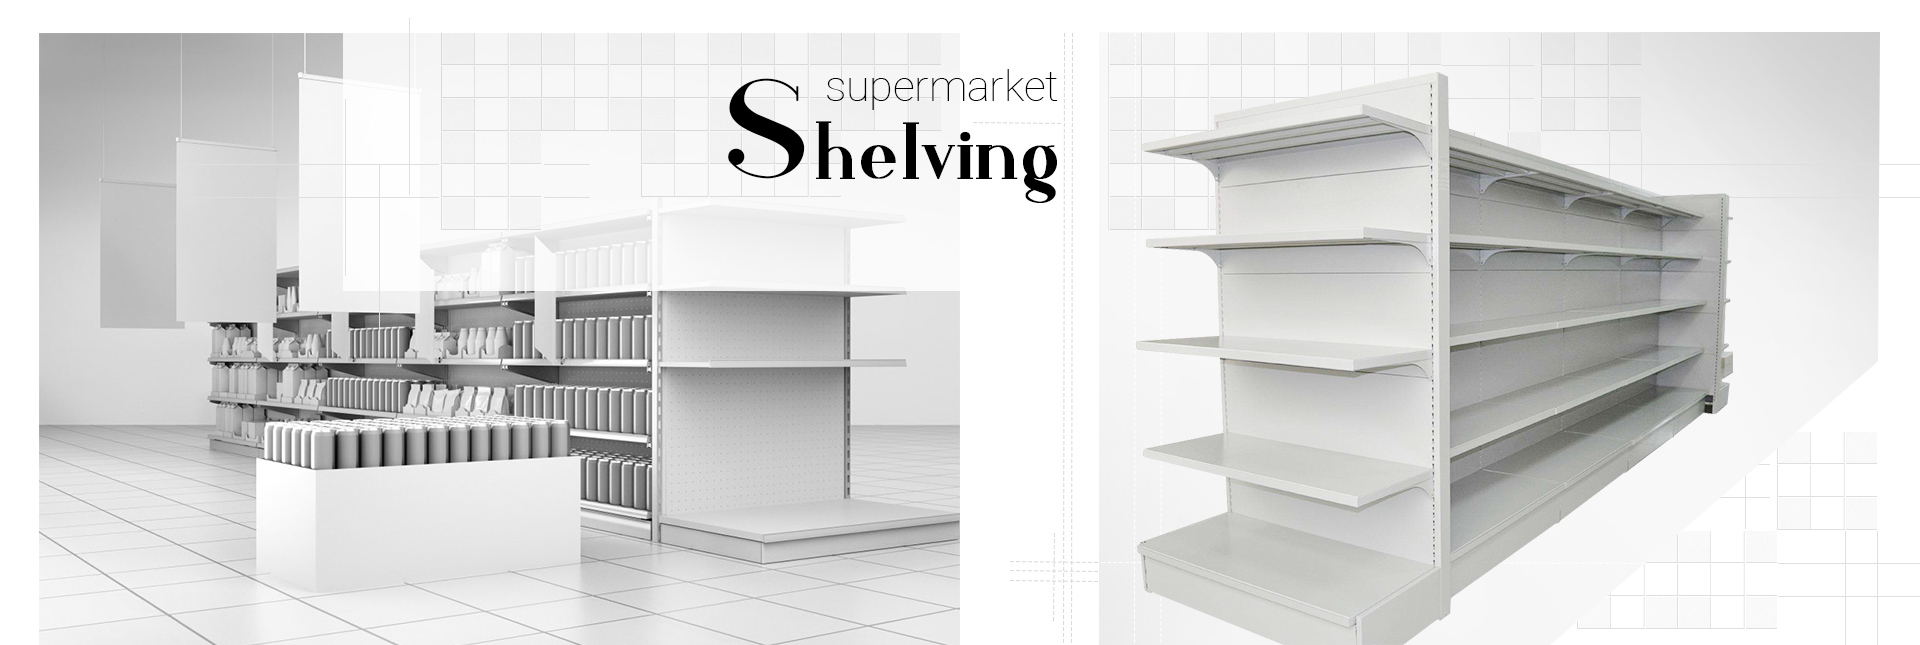 superbazaro-shelving